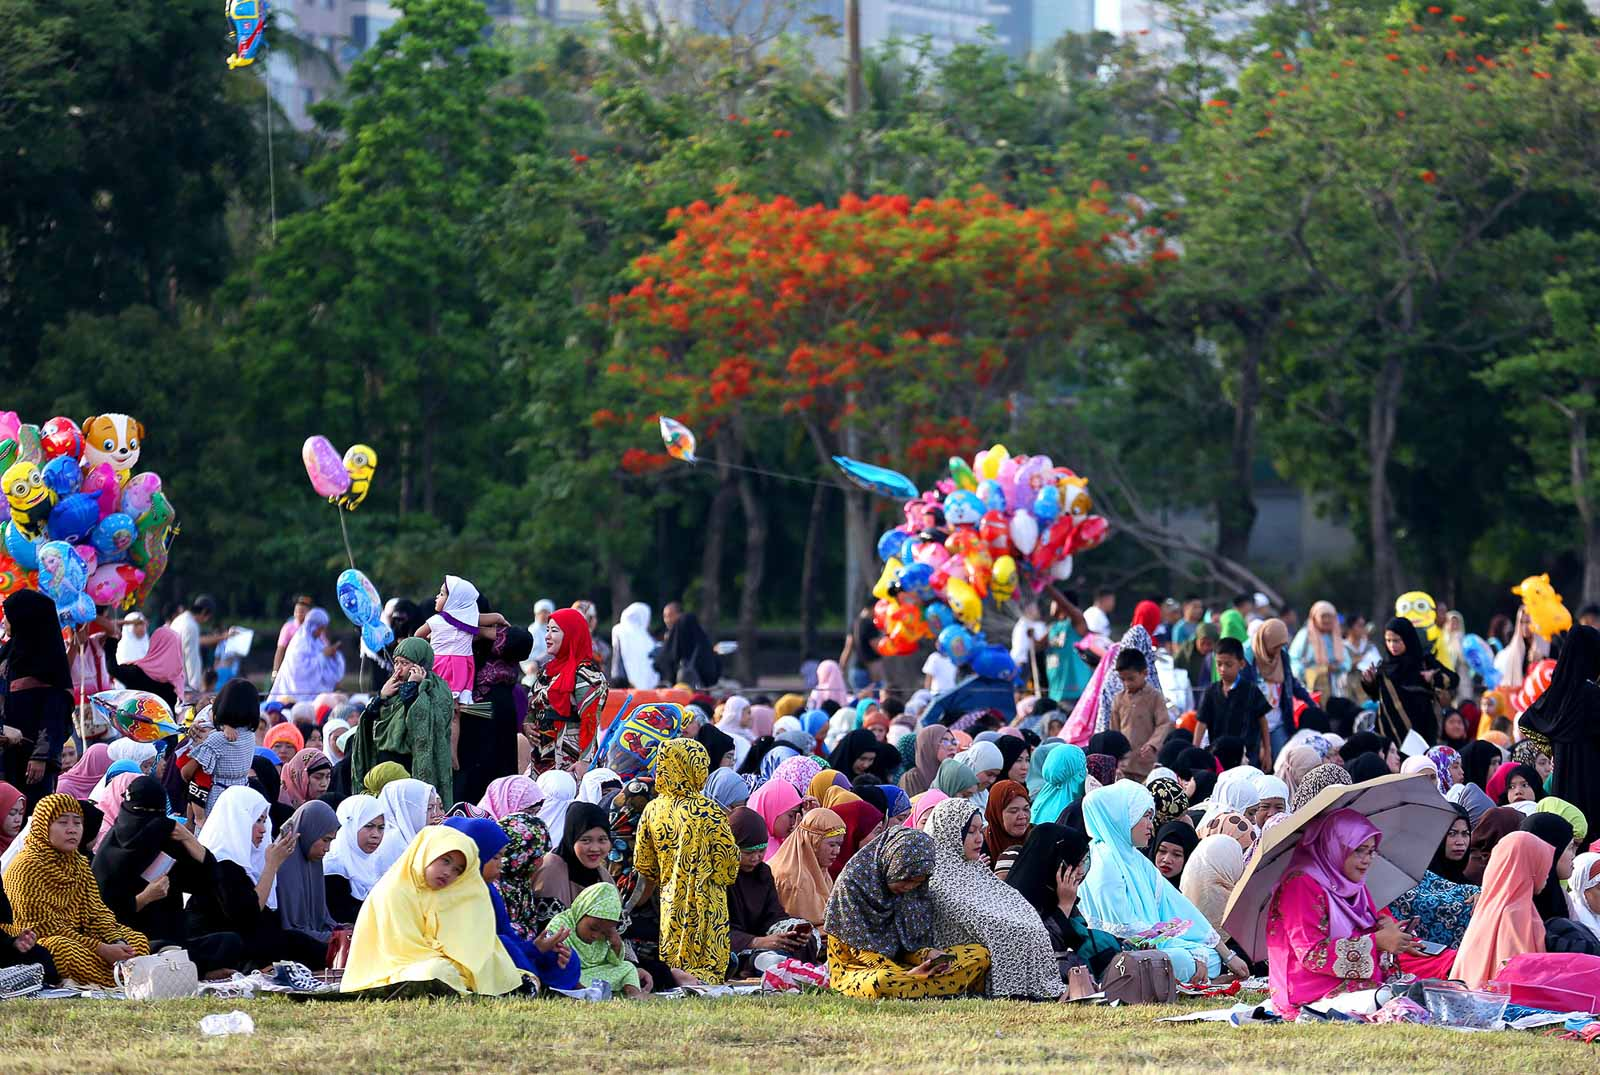 CELEBRATION. Muslim women of Marawi City give each other a hug after the Eid prayers (above) while families spend the rest of the morning at the Luneta Park in Manila. Photos by Martin San Diego and Inoue Jaena/Rappler